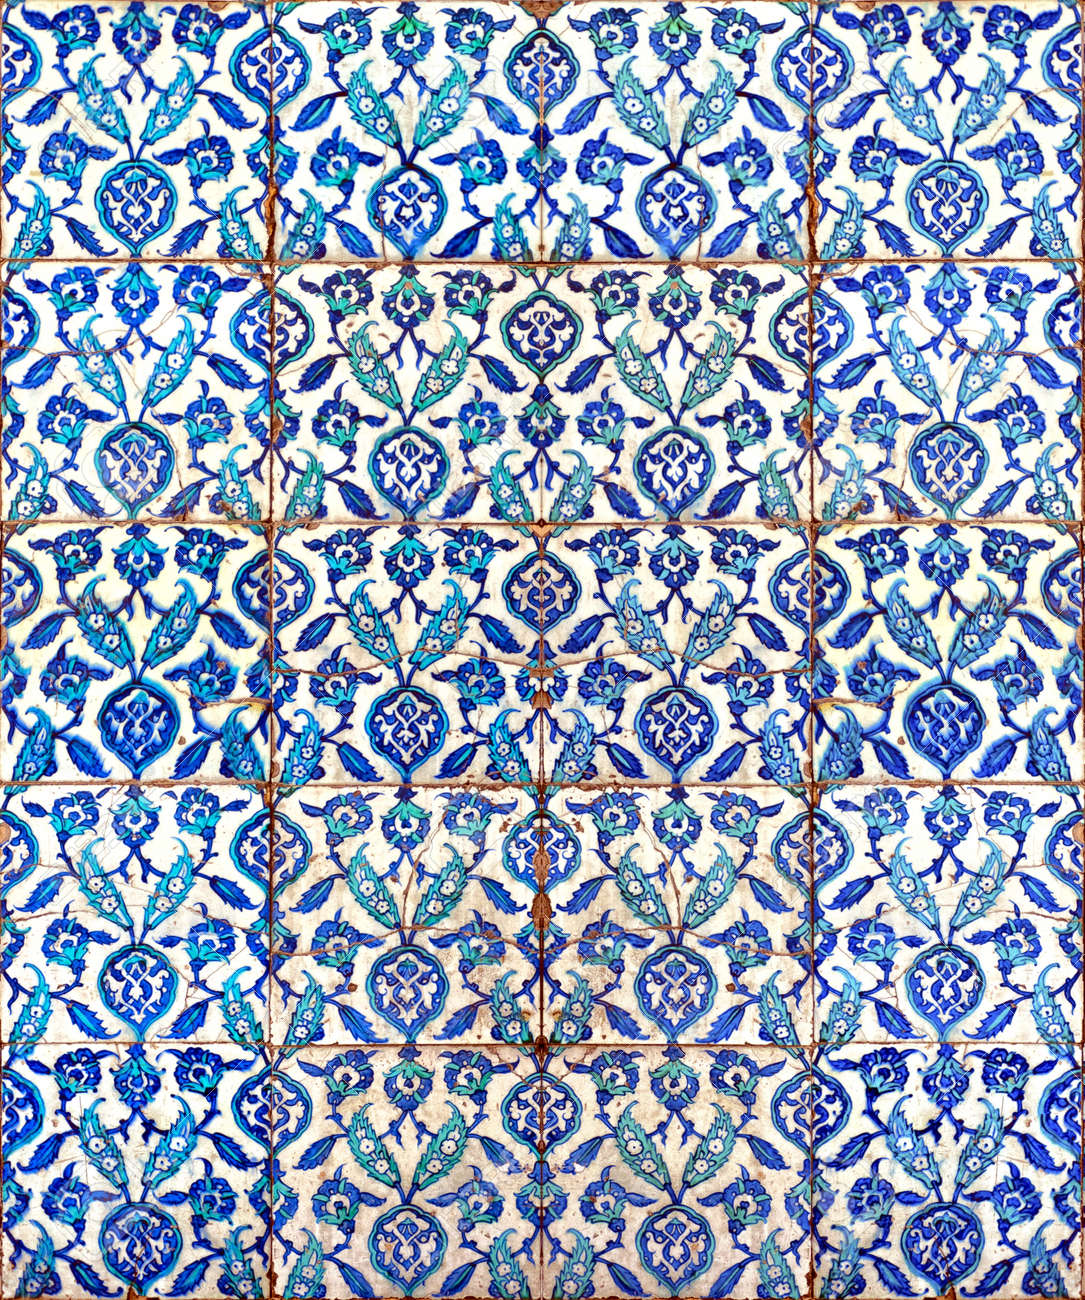 Charming 1200 X 600 Floor Tiles Tall 16 Ceiling Tiles Shaped 2 X 4 Ceiling Tile 2X2 Drop Ceiling Tiles Young 3 Tile Patterns For Floors Soft3D Ceramic Tiles A Seamless Background Image Of Ancient Hand Painted Ceramic Tiles ..